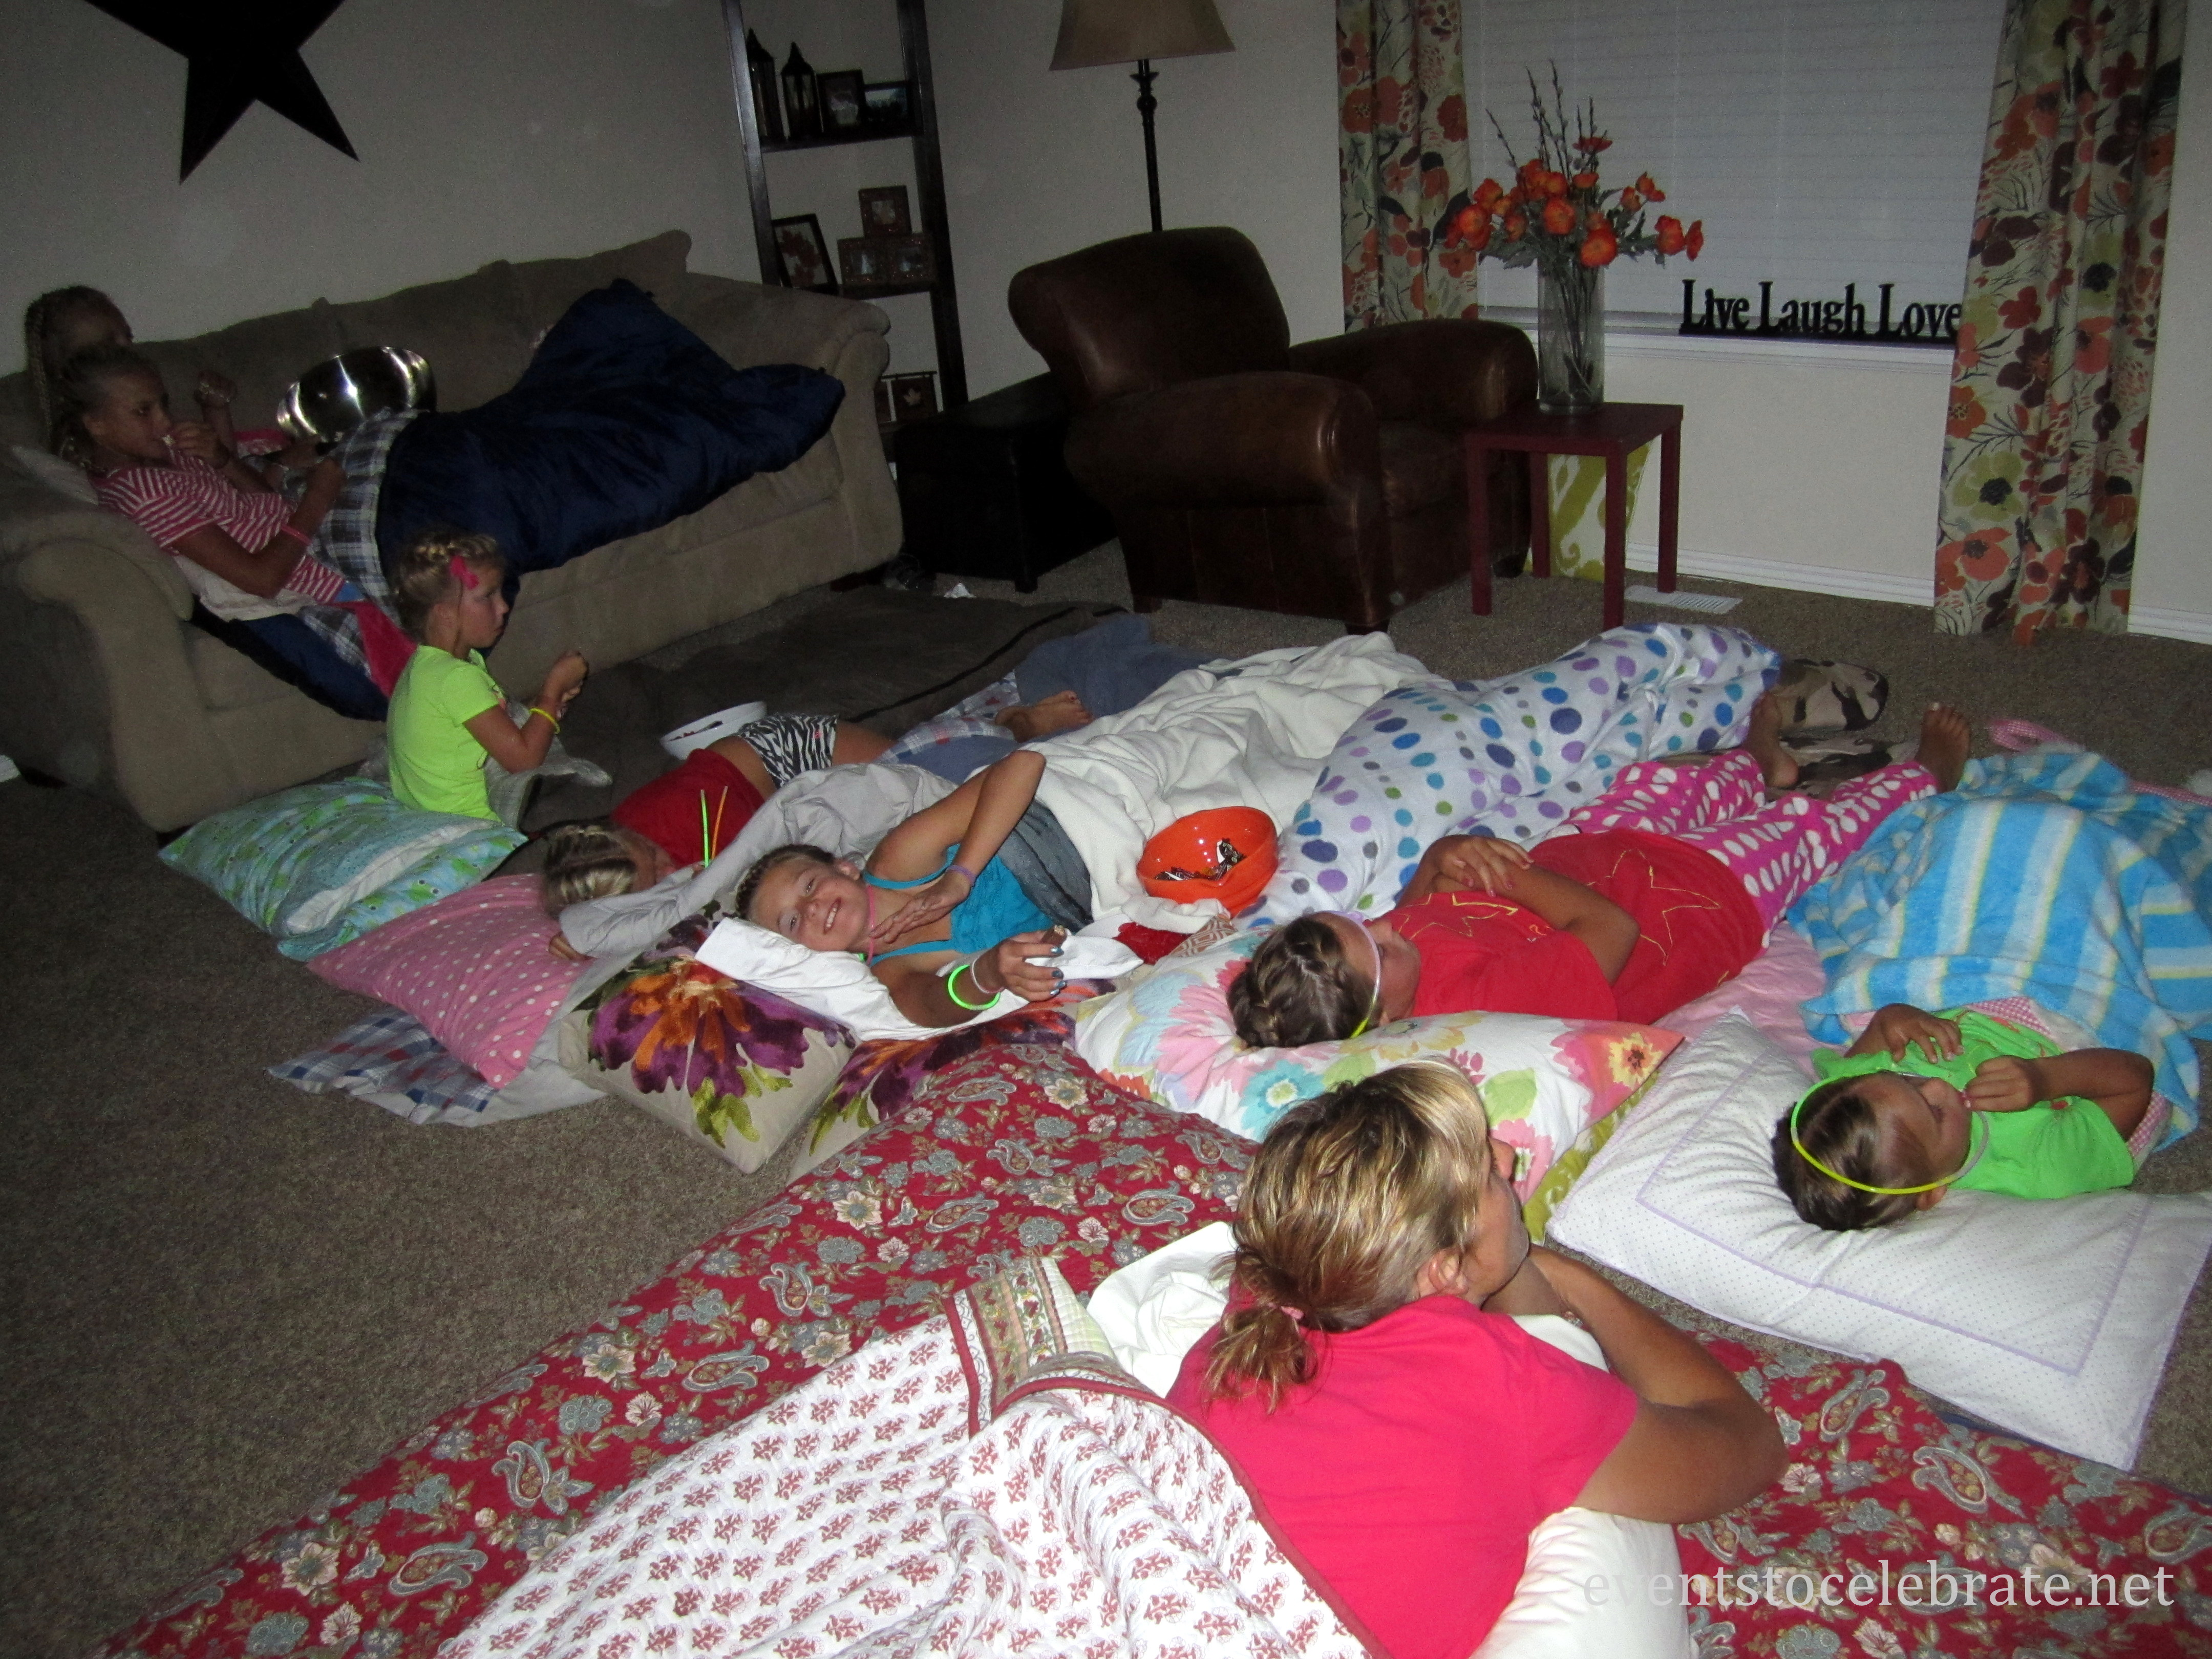 Movie around 9 00 we make our beds and settle in for a good movie